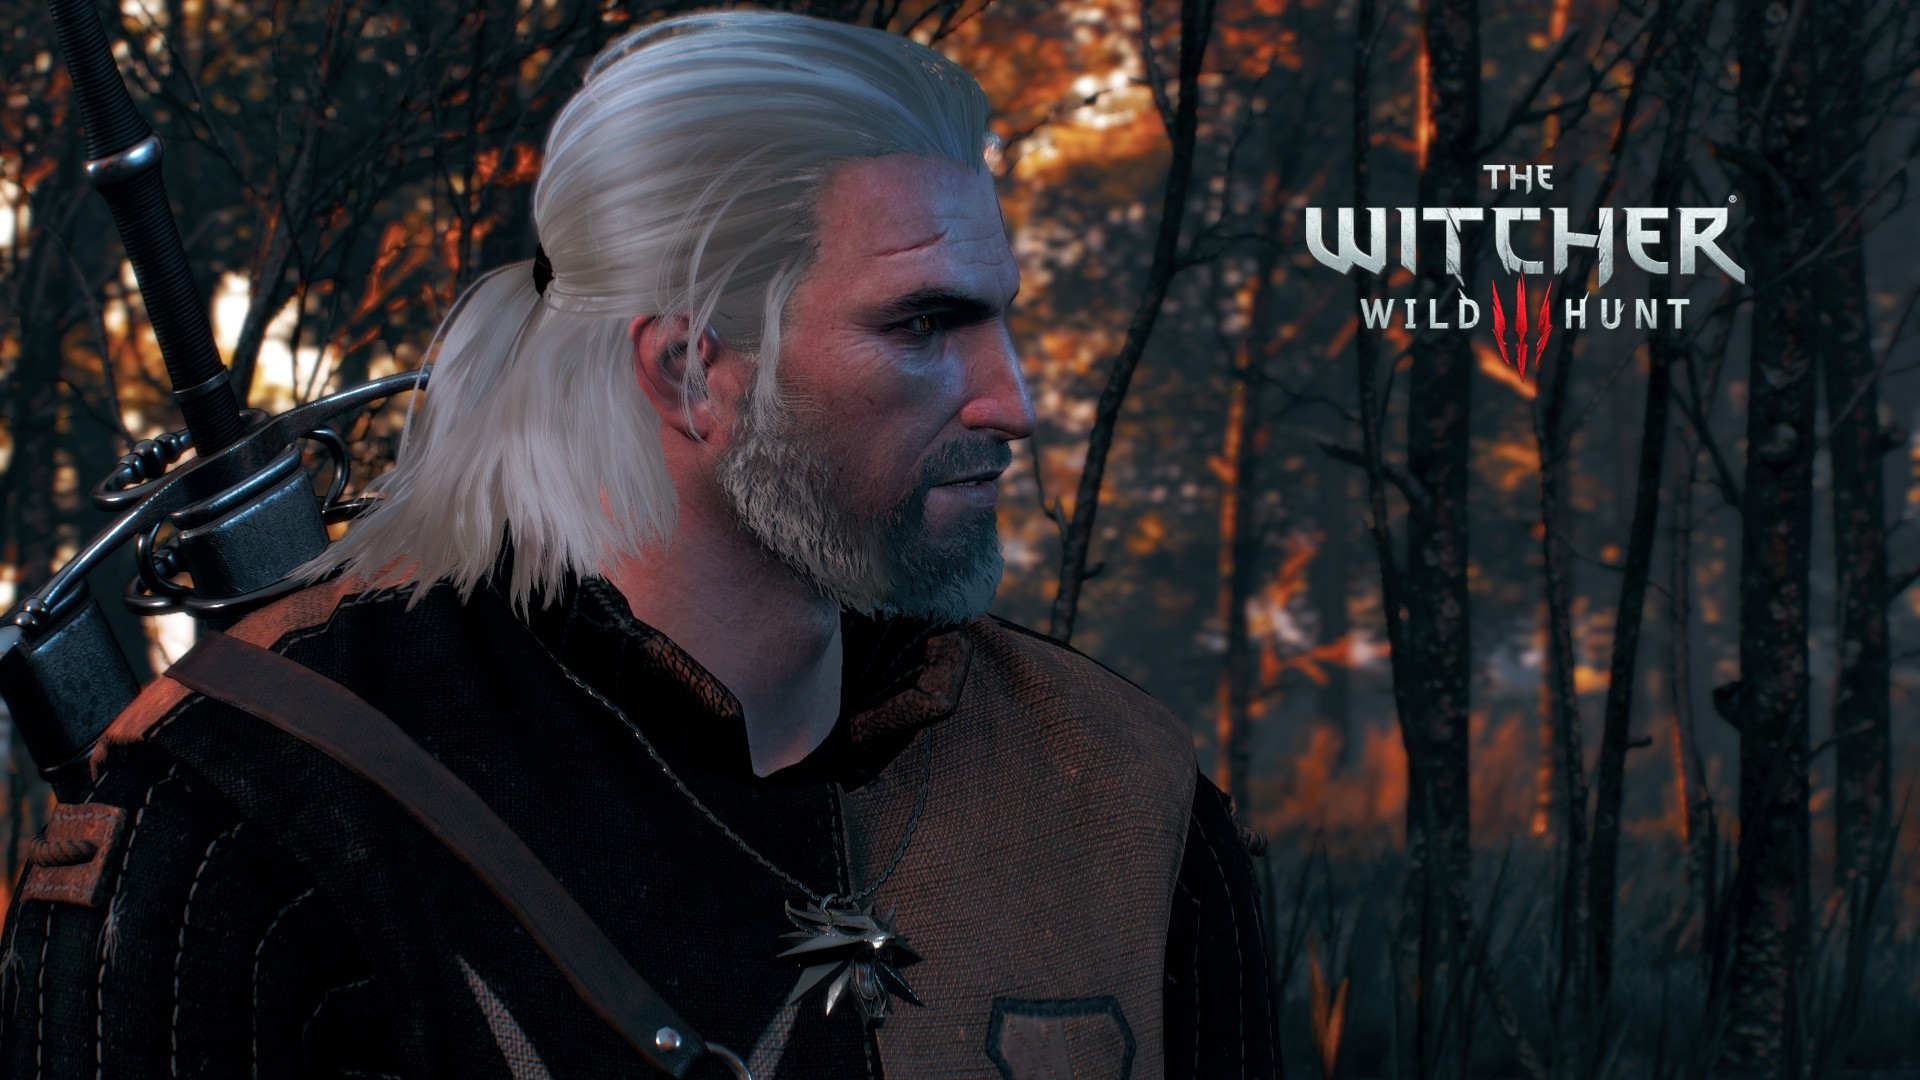 the witcher 3: wild hunt geralt of rivia video games rpg